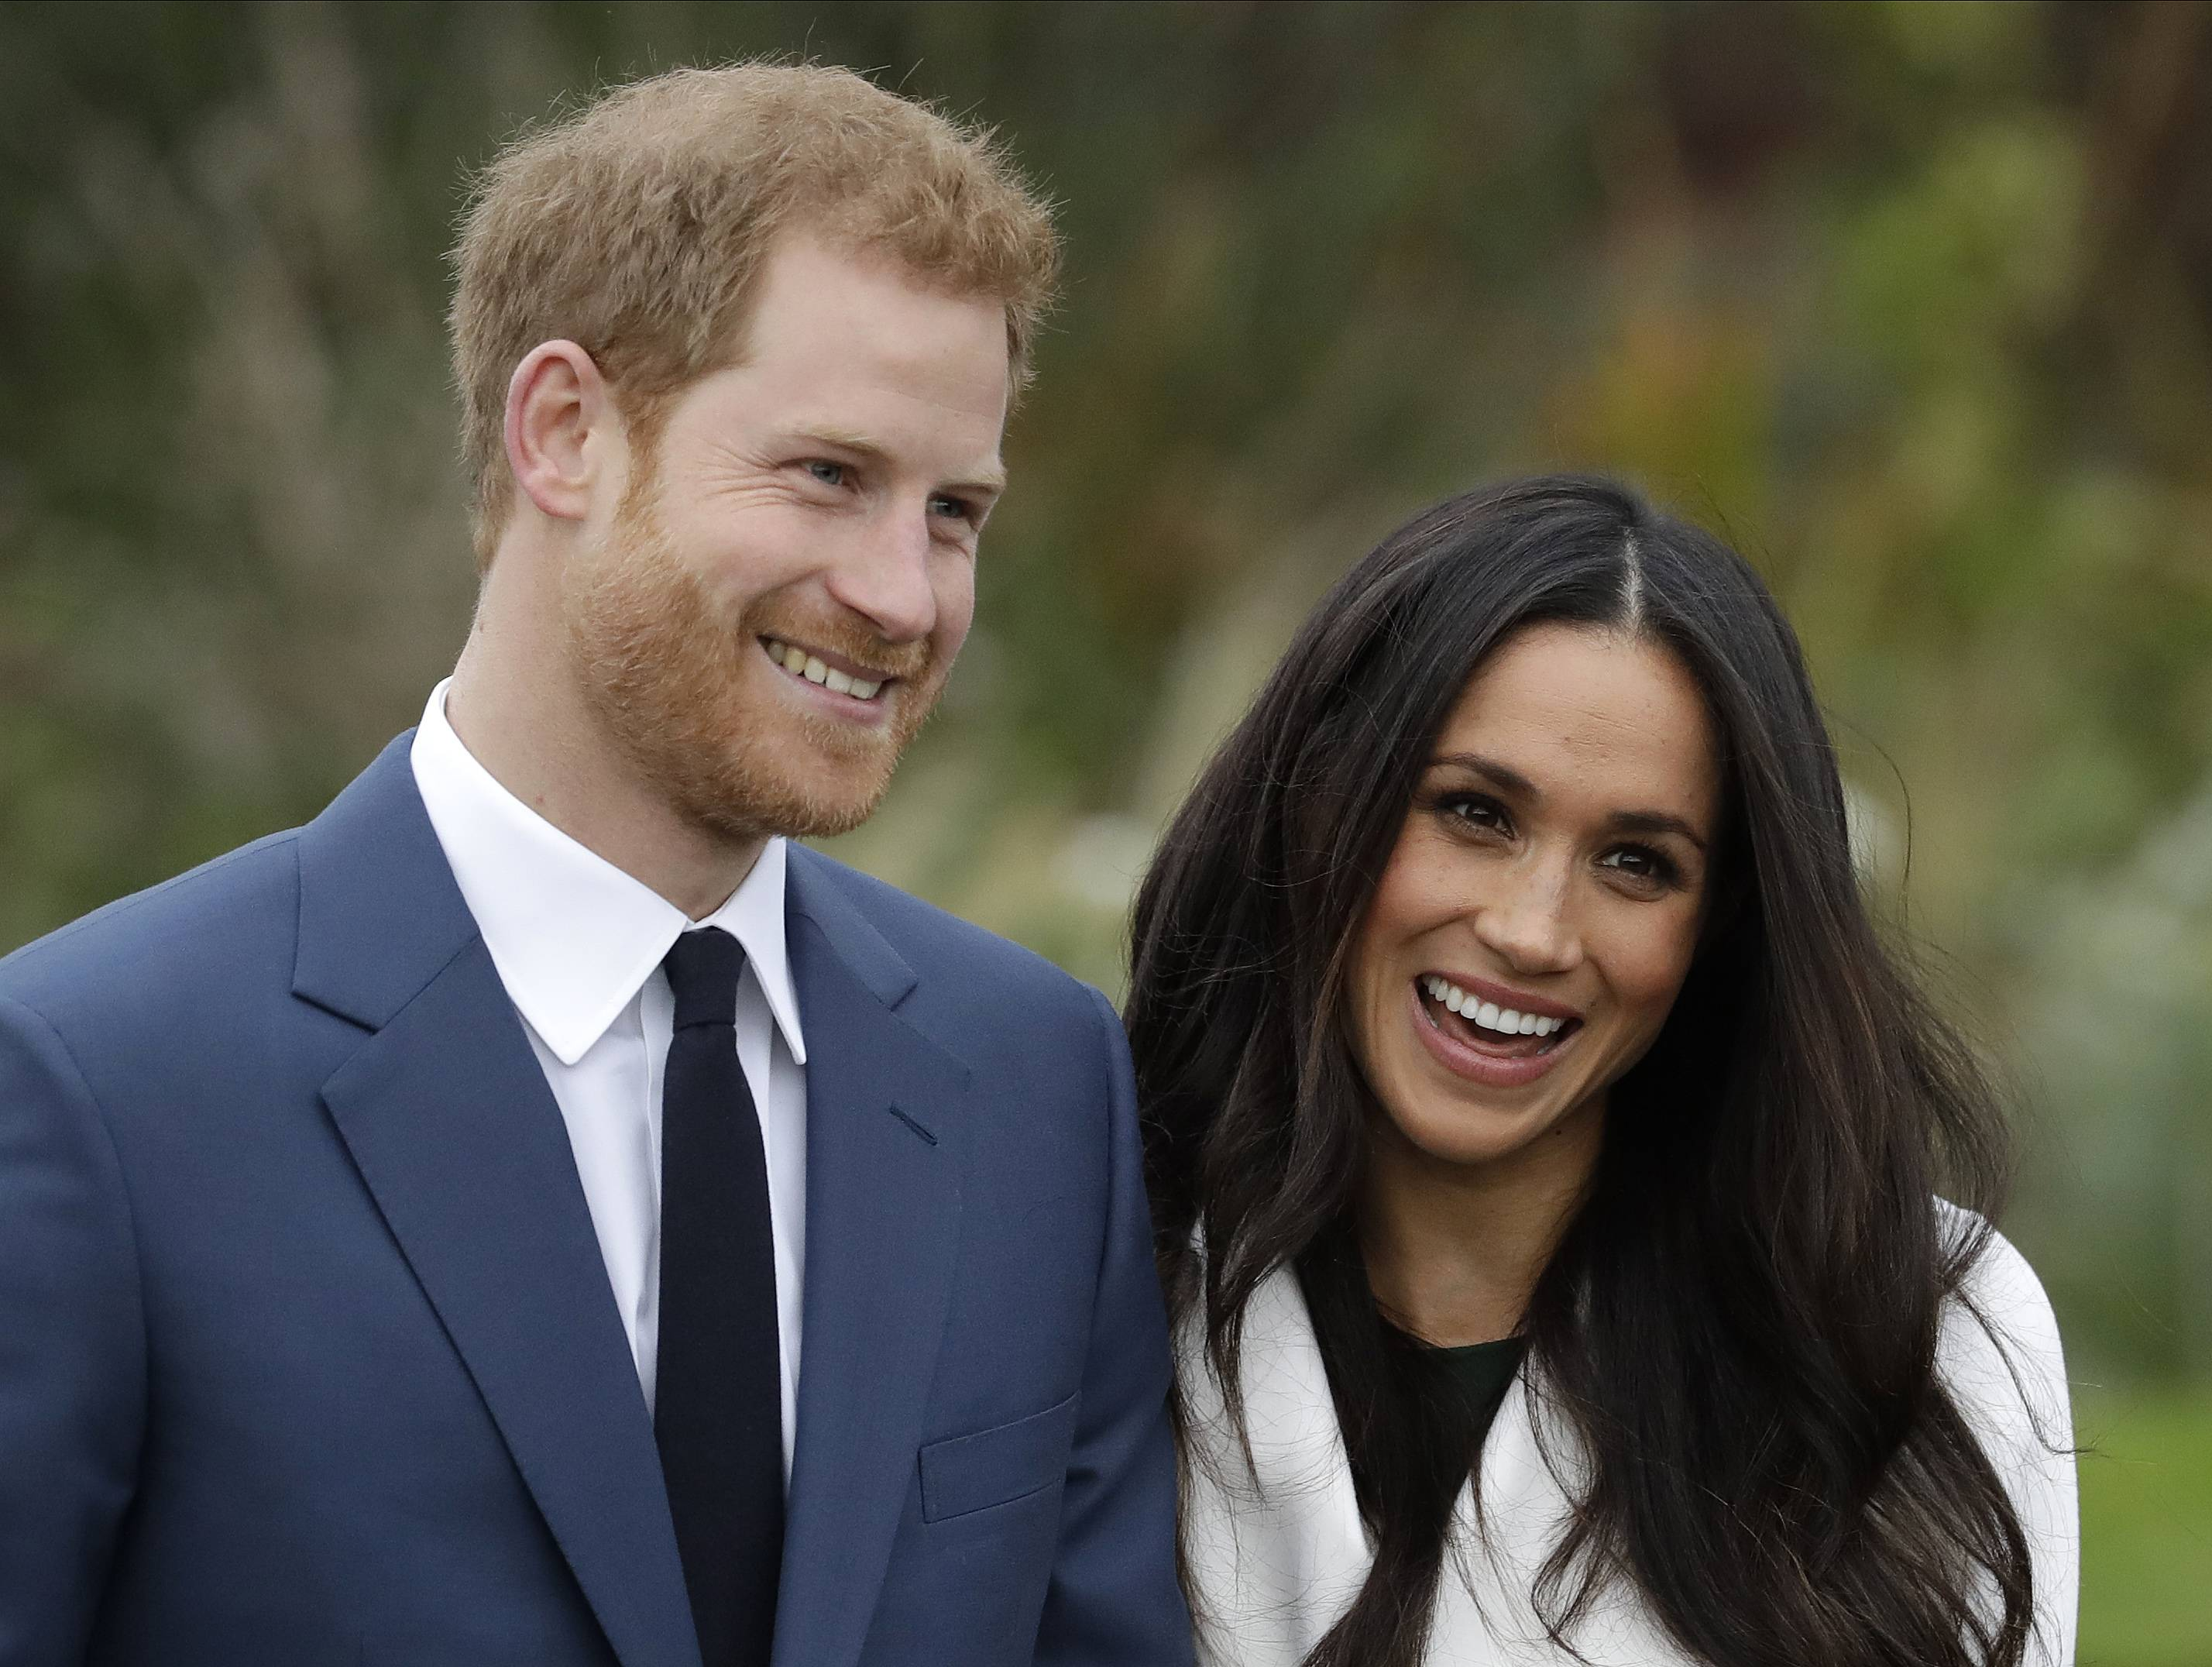 Britain's royal palace says Prince Harry and actress Meghan Markle are engaged and will marry in the spring of 2018.